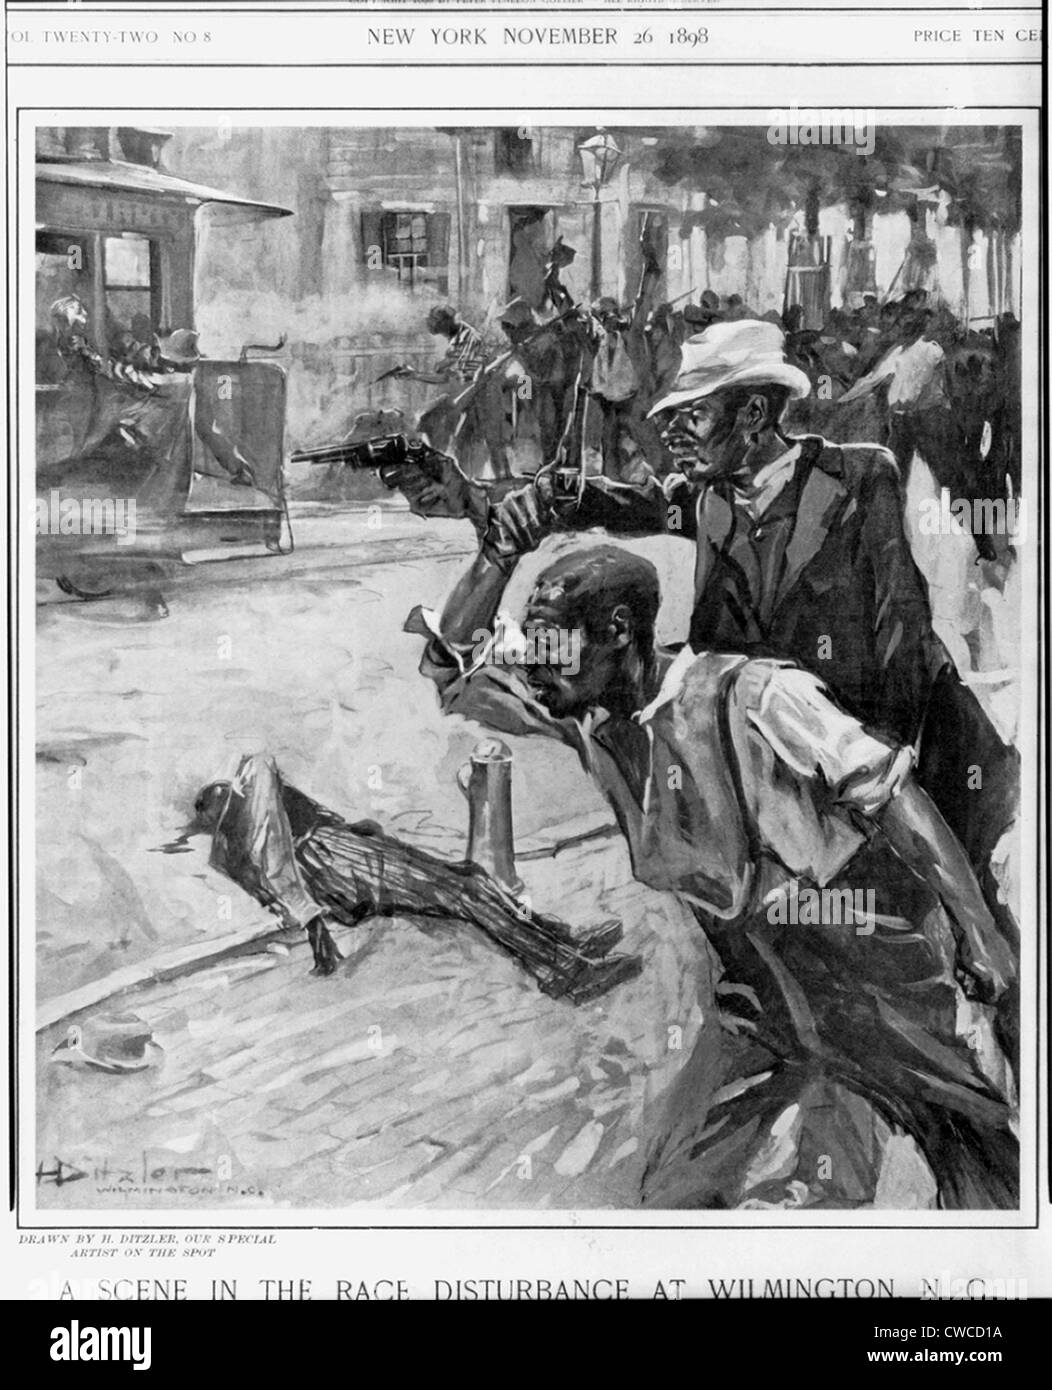 'A Scene at the Race Disturbance in Wilmington, N.C.,' was published in COLLIERS WEEKLY, Nov. 26, 1898. - Stock Image